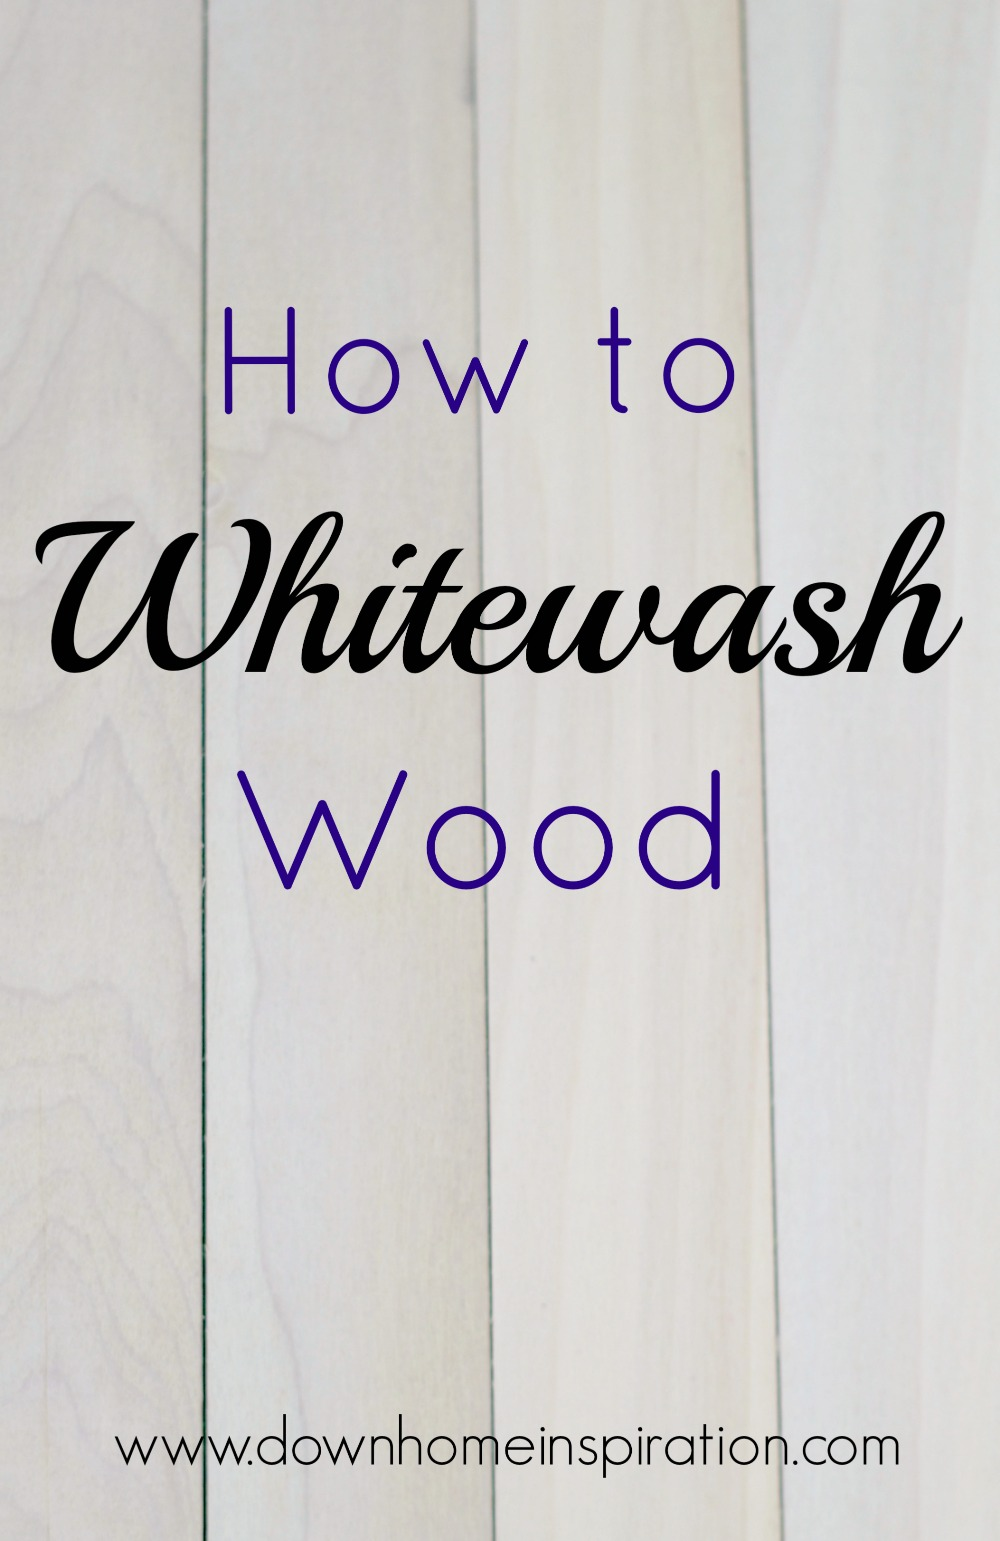 - How To Whitewash Wood - Down Home Inspiration